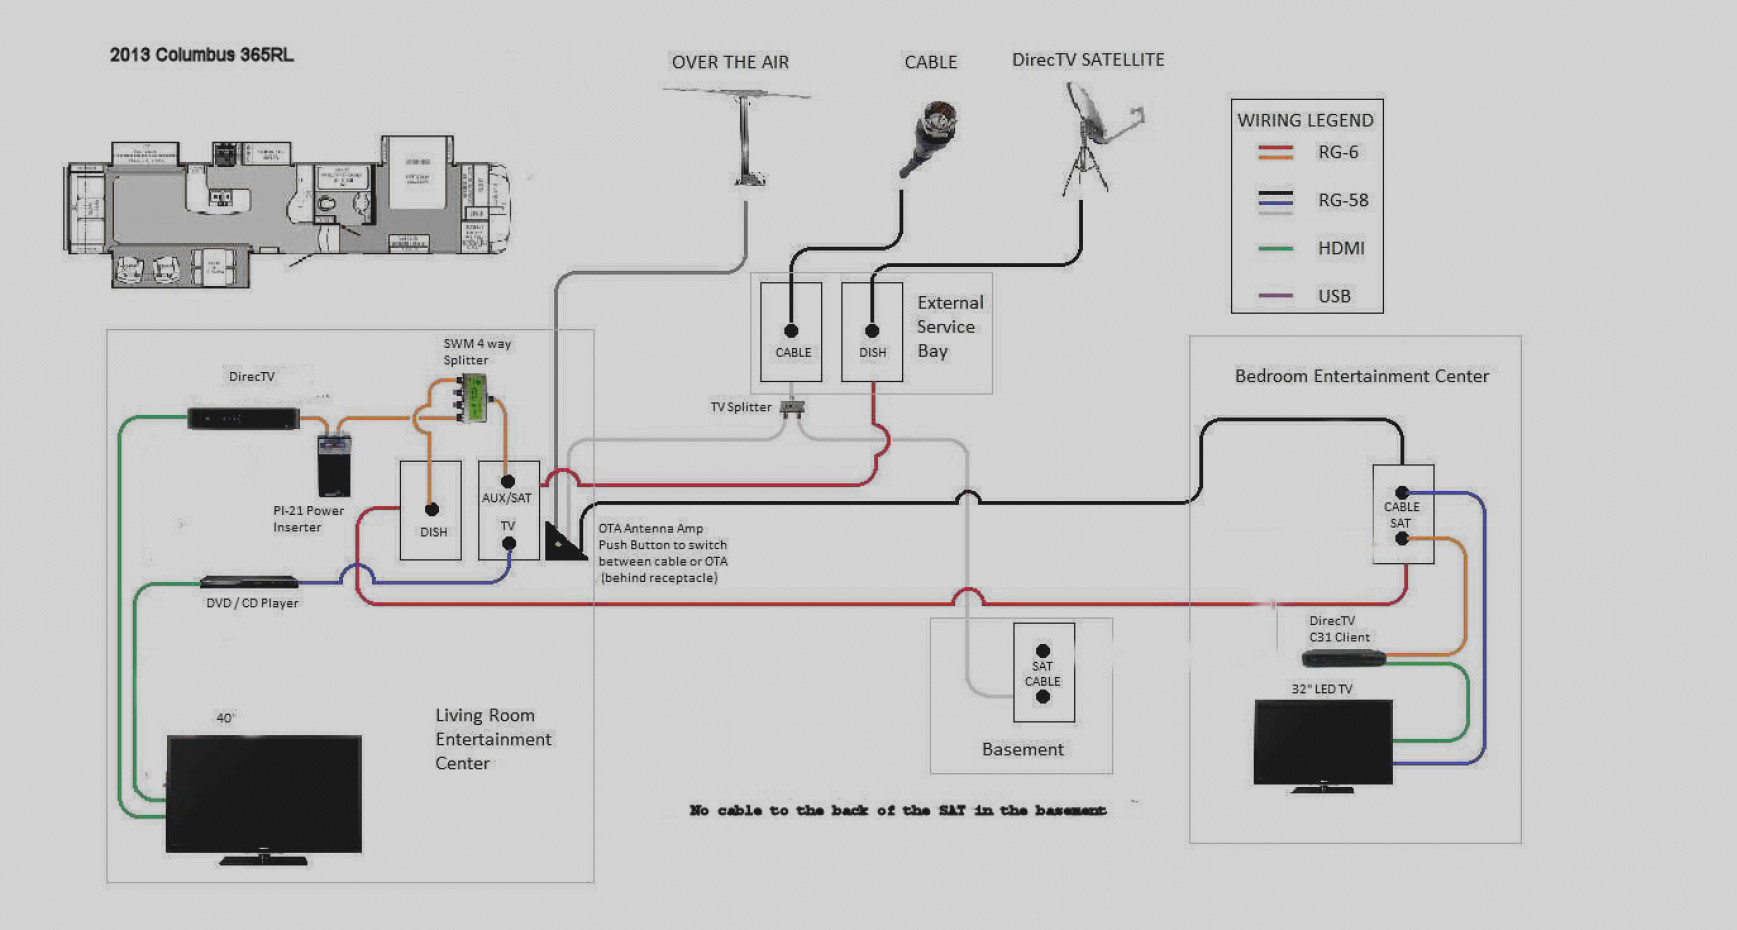 Wiring Diagram Entertainment Center | Wiring Diagram - Rv Satellite Wiring Diagram